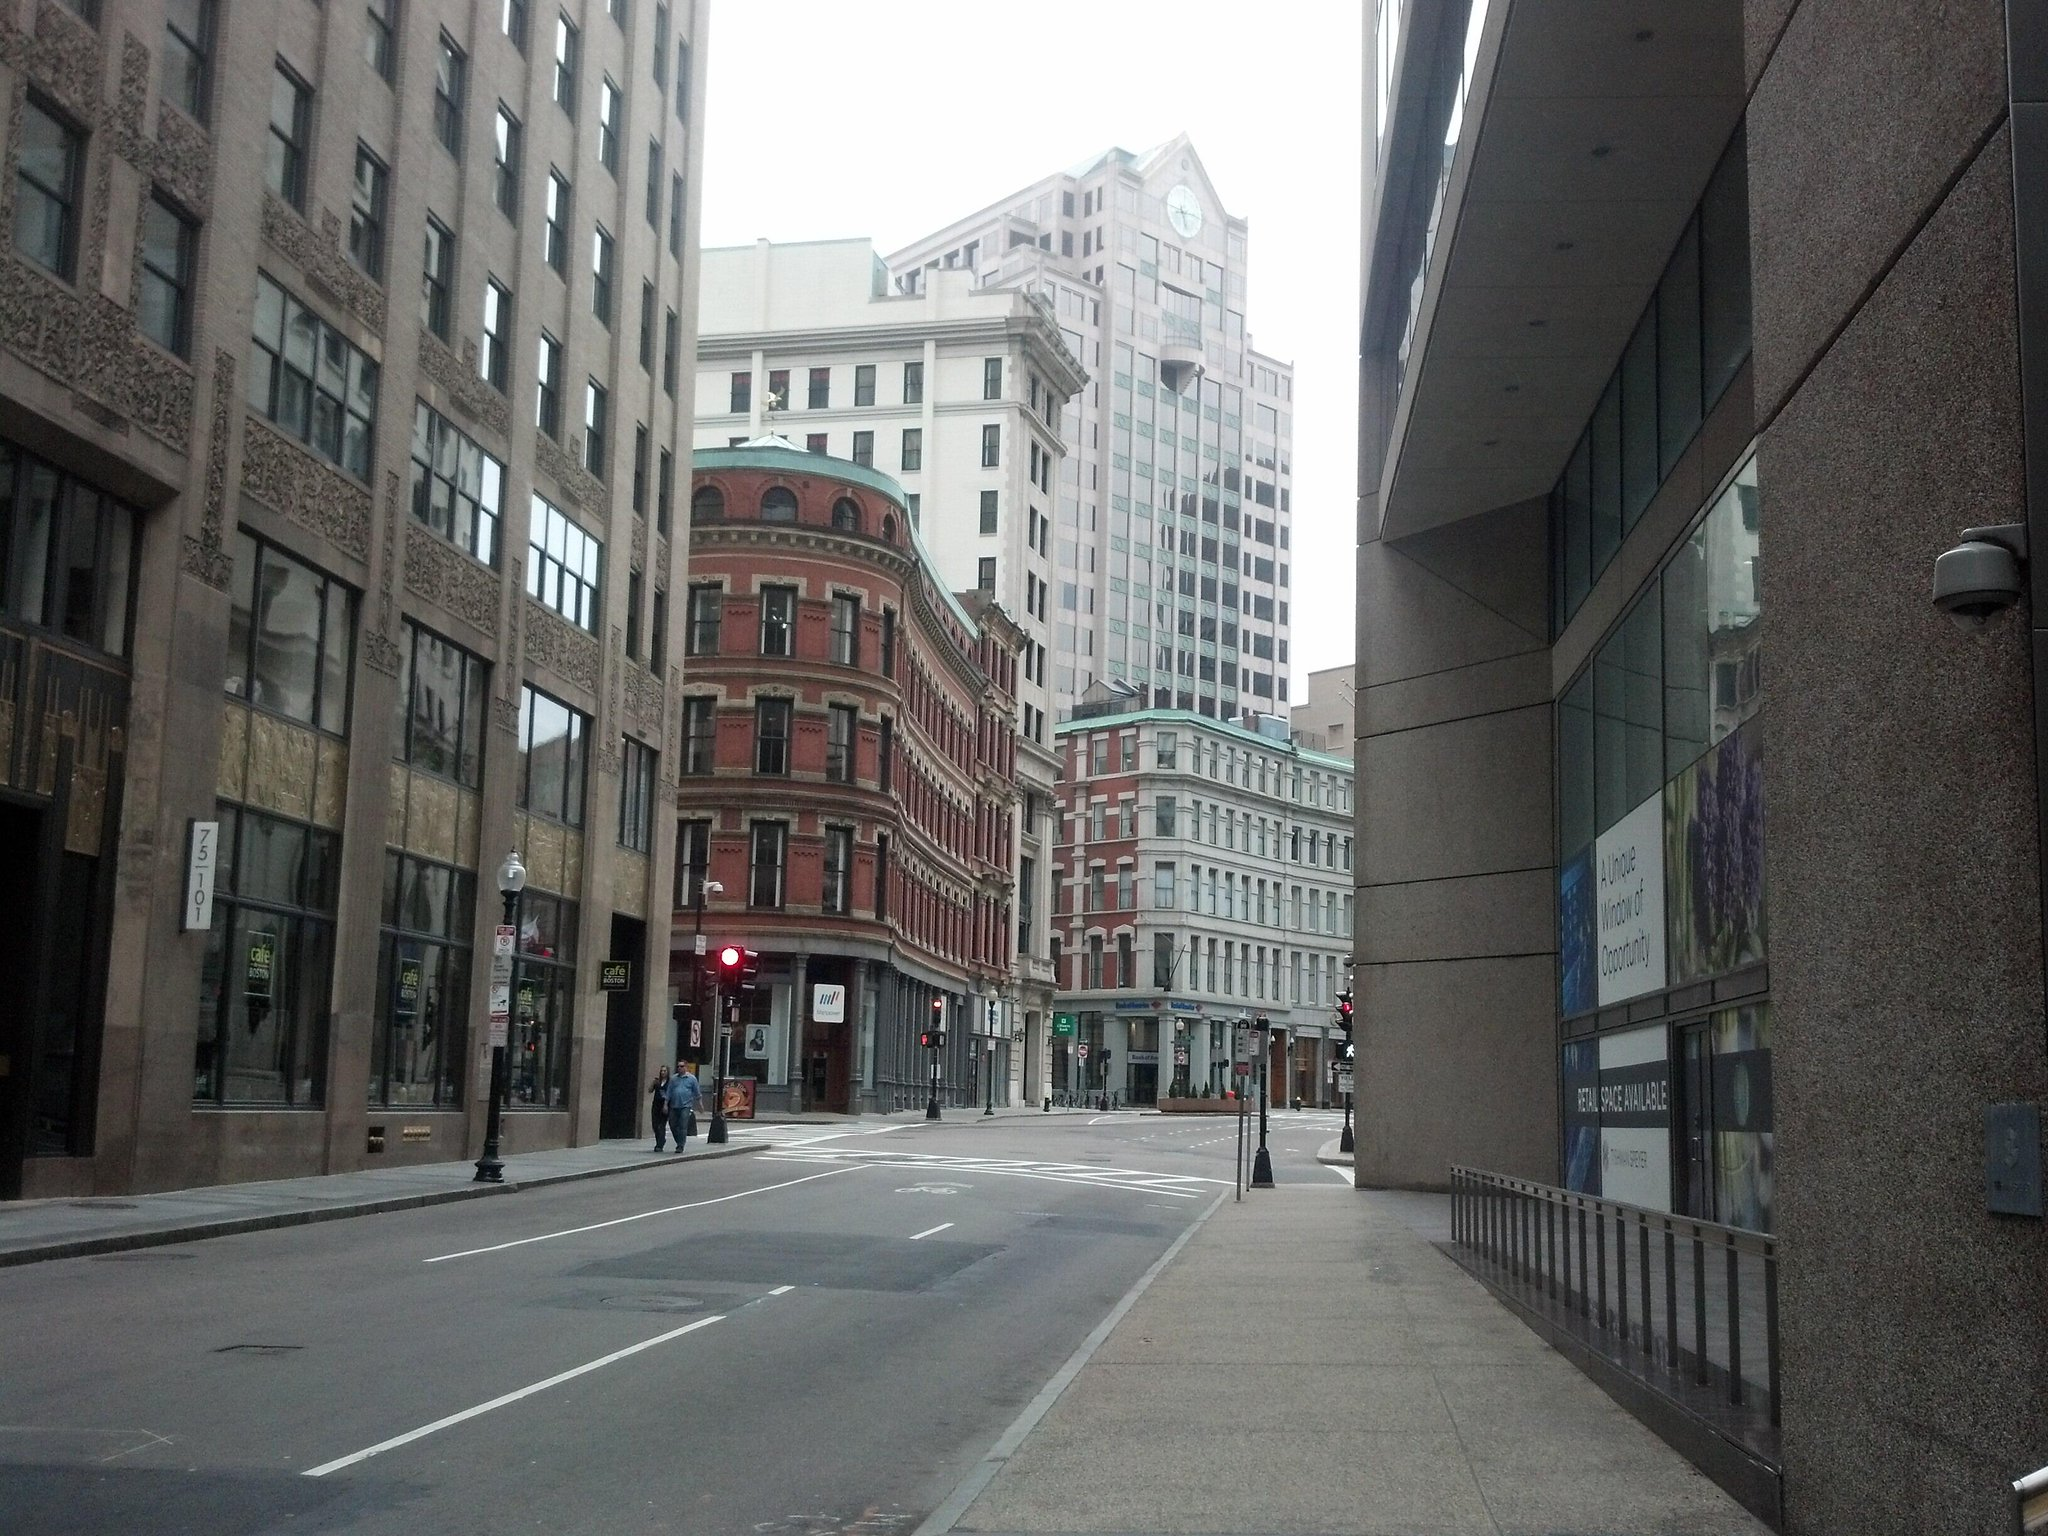 Downtown #Boston at rush hour during manhunt lockdown http://t.co/d8jwJEYXik